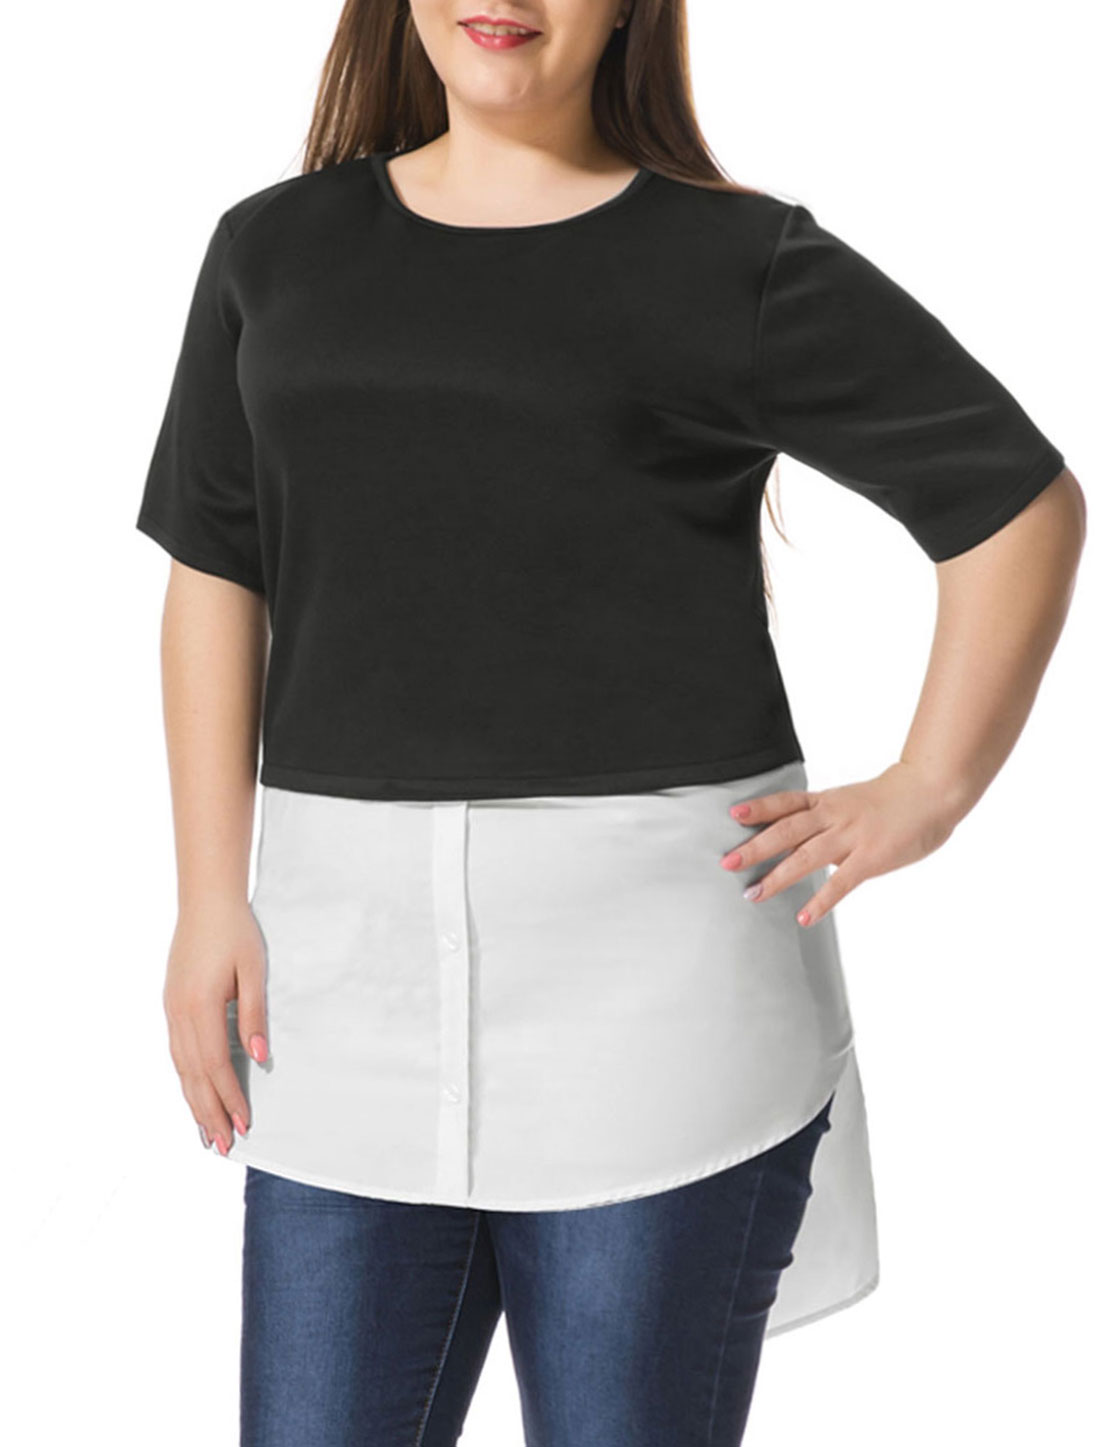 Women Plus Size Contrast-Paneled Shirttail Tunic Top Black White 3X